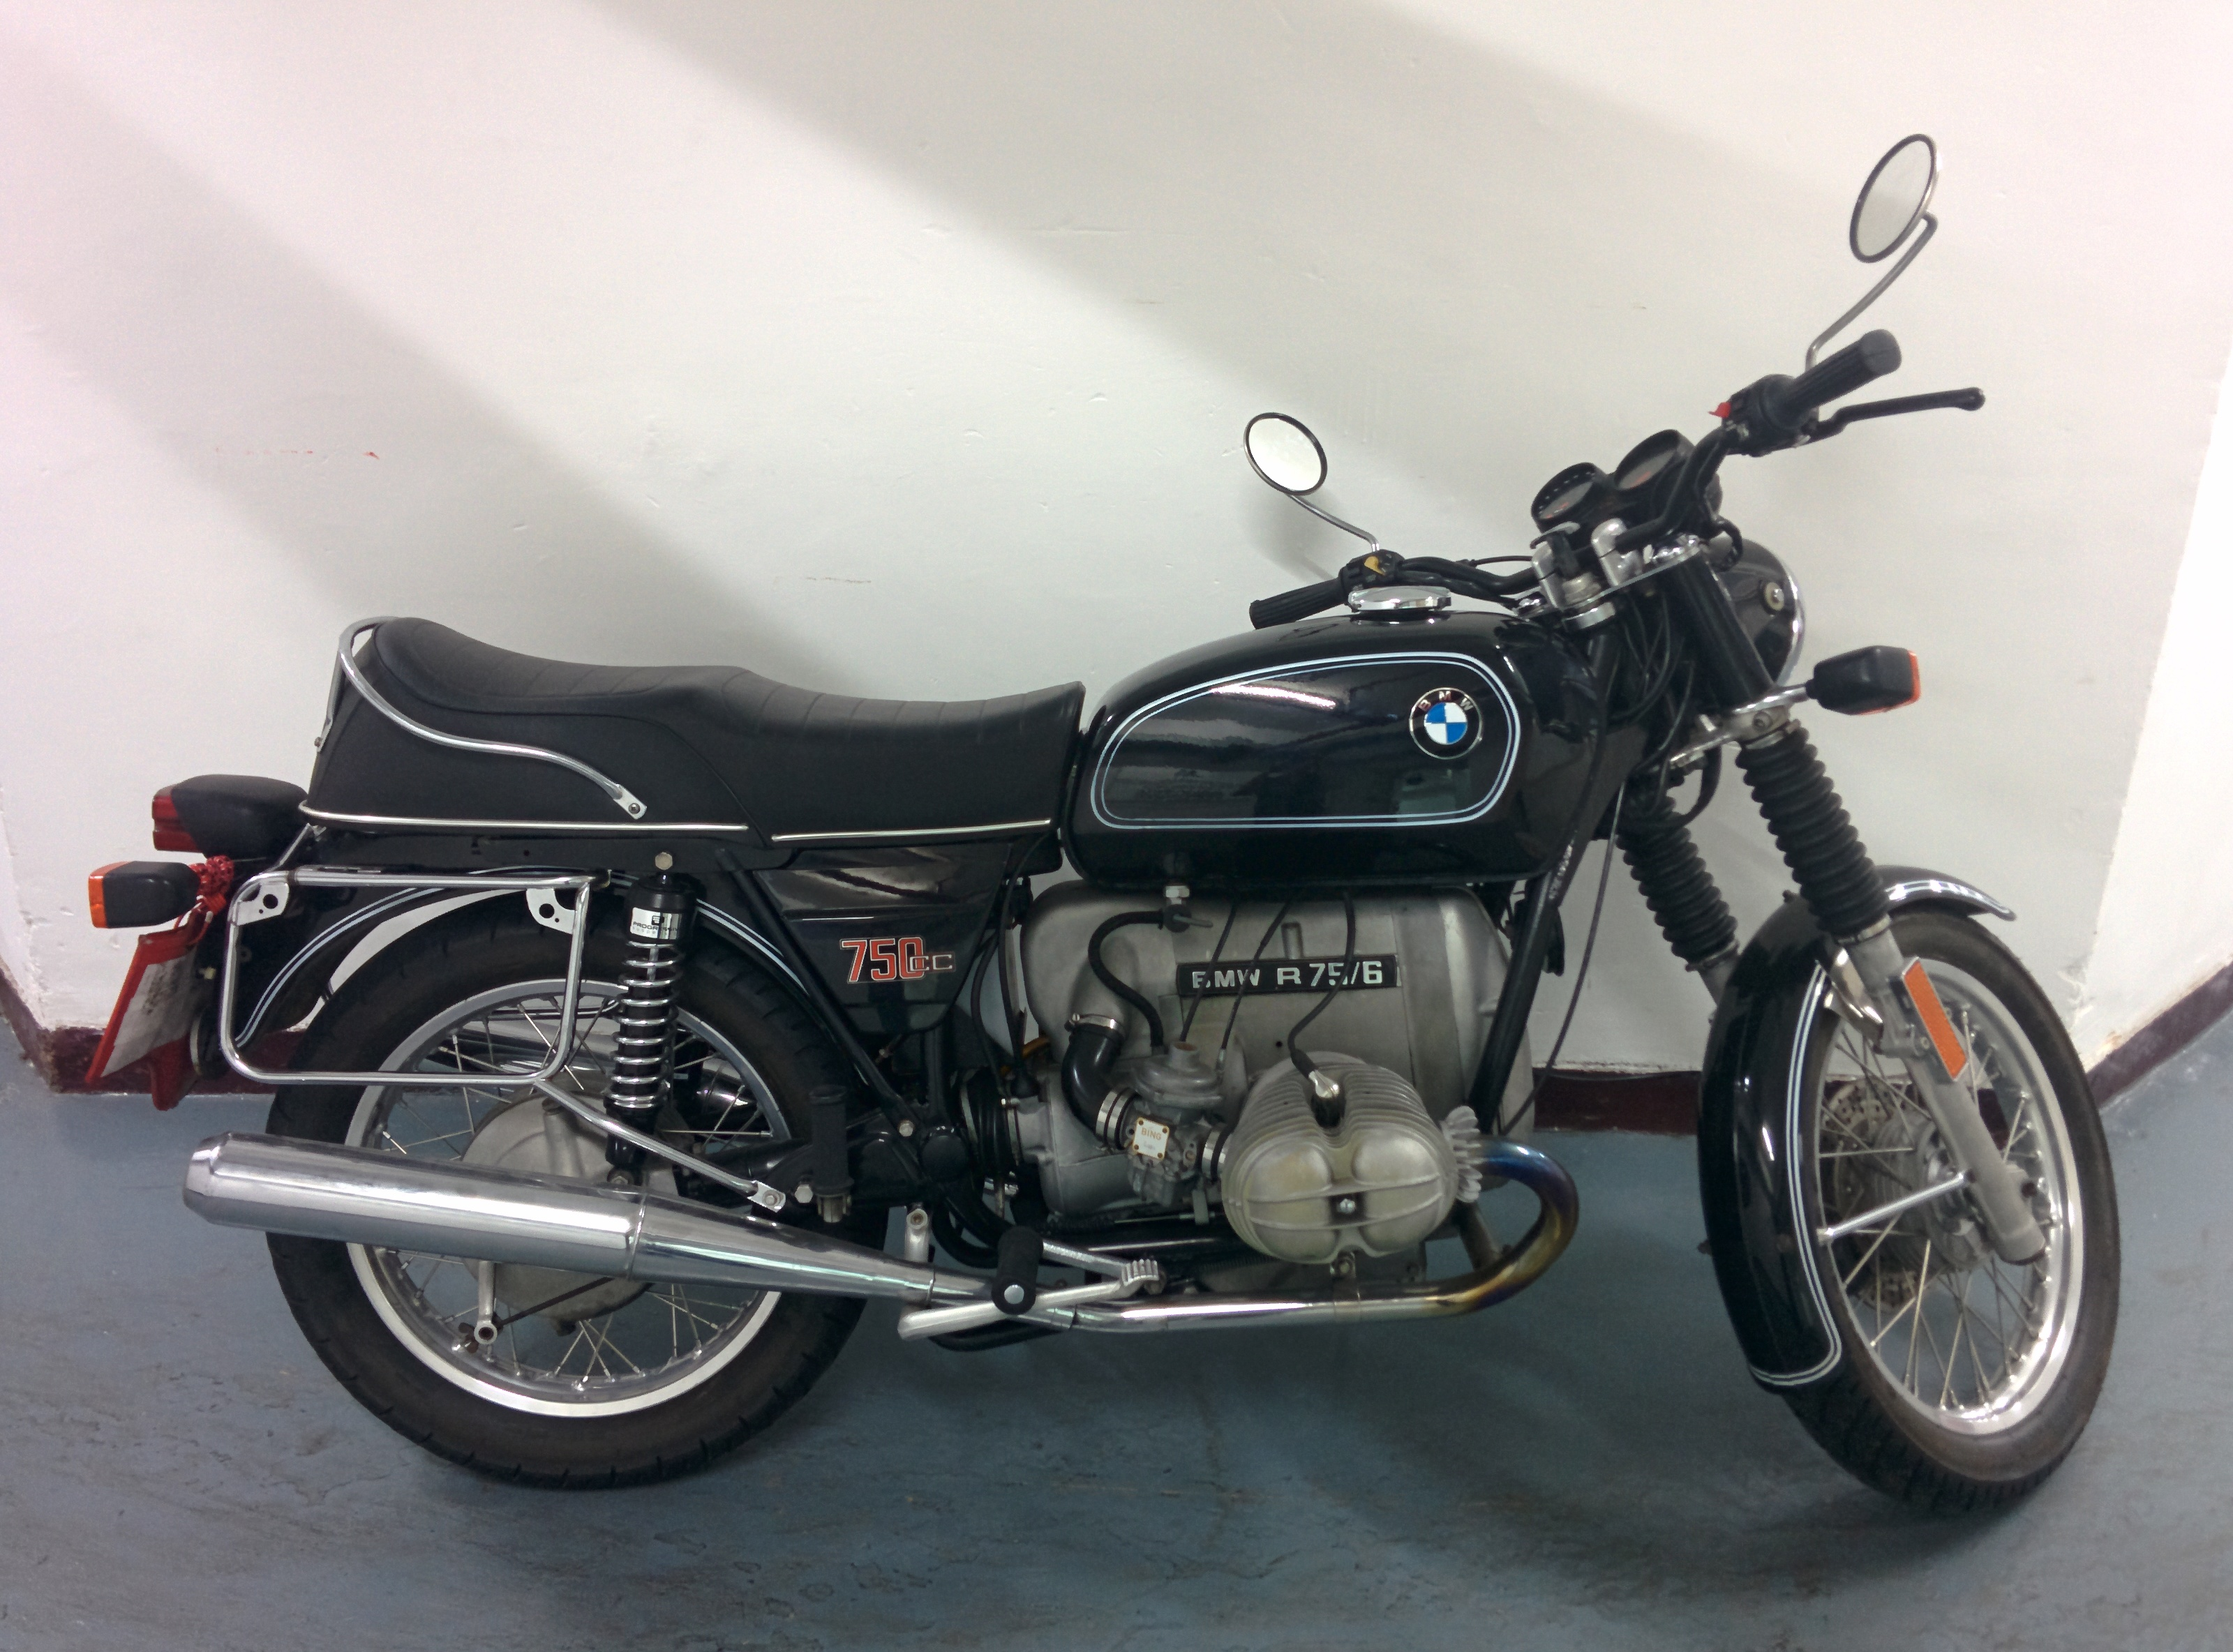 1976 Bmw R75 6 Sold Motion Motorcycle Motion